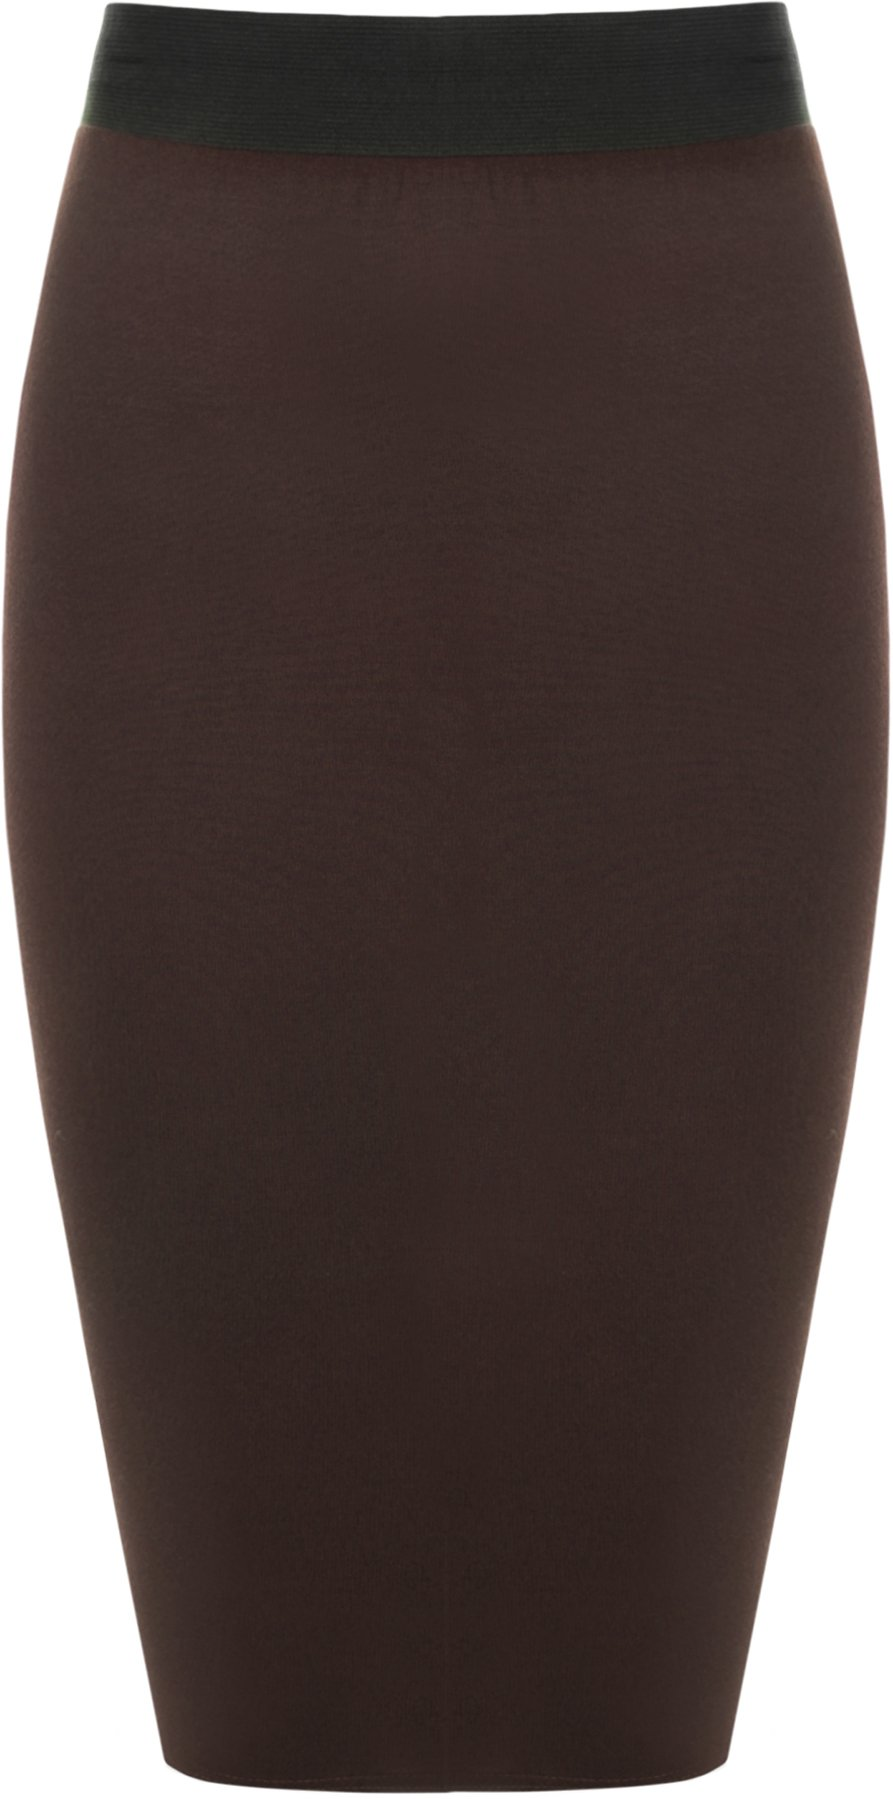 WearAll Plus Size Women's Knee Length Elasticated Skirt - Brown - 12-14